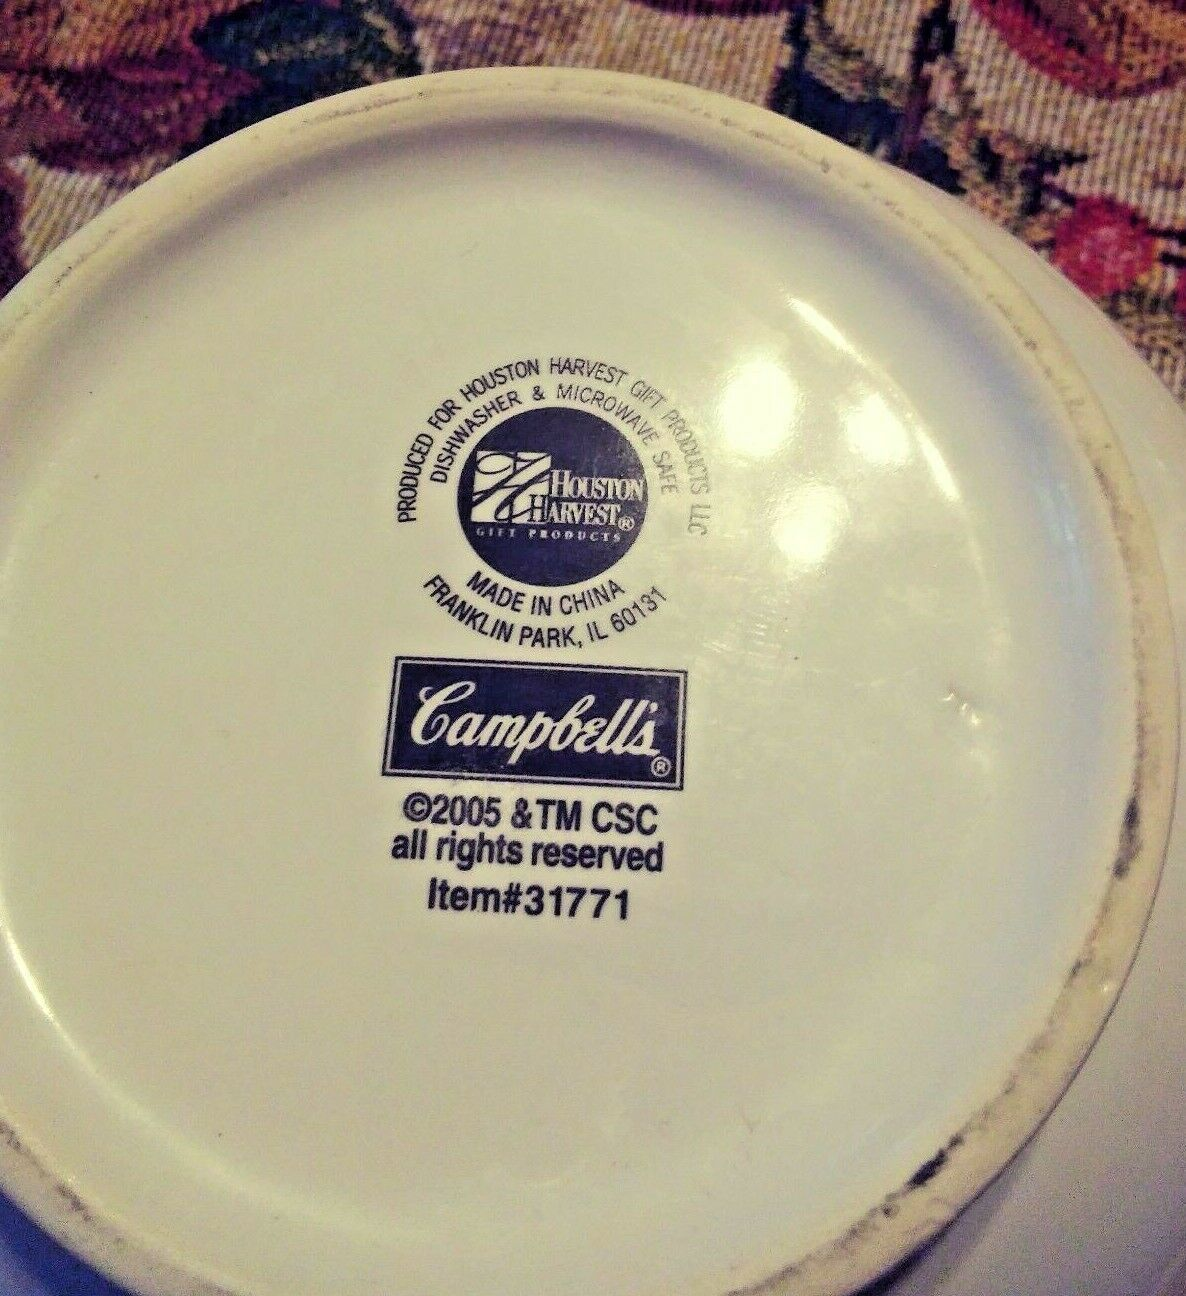 VINTAGE 2005 CAMPBELLS SOUP COLLECTIBLE BOWL / CUP ITEM # 31771 image 10